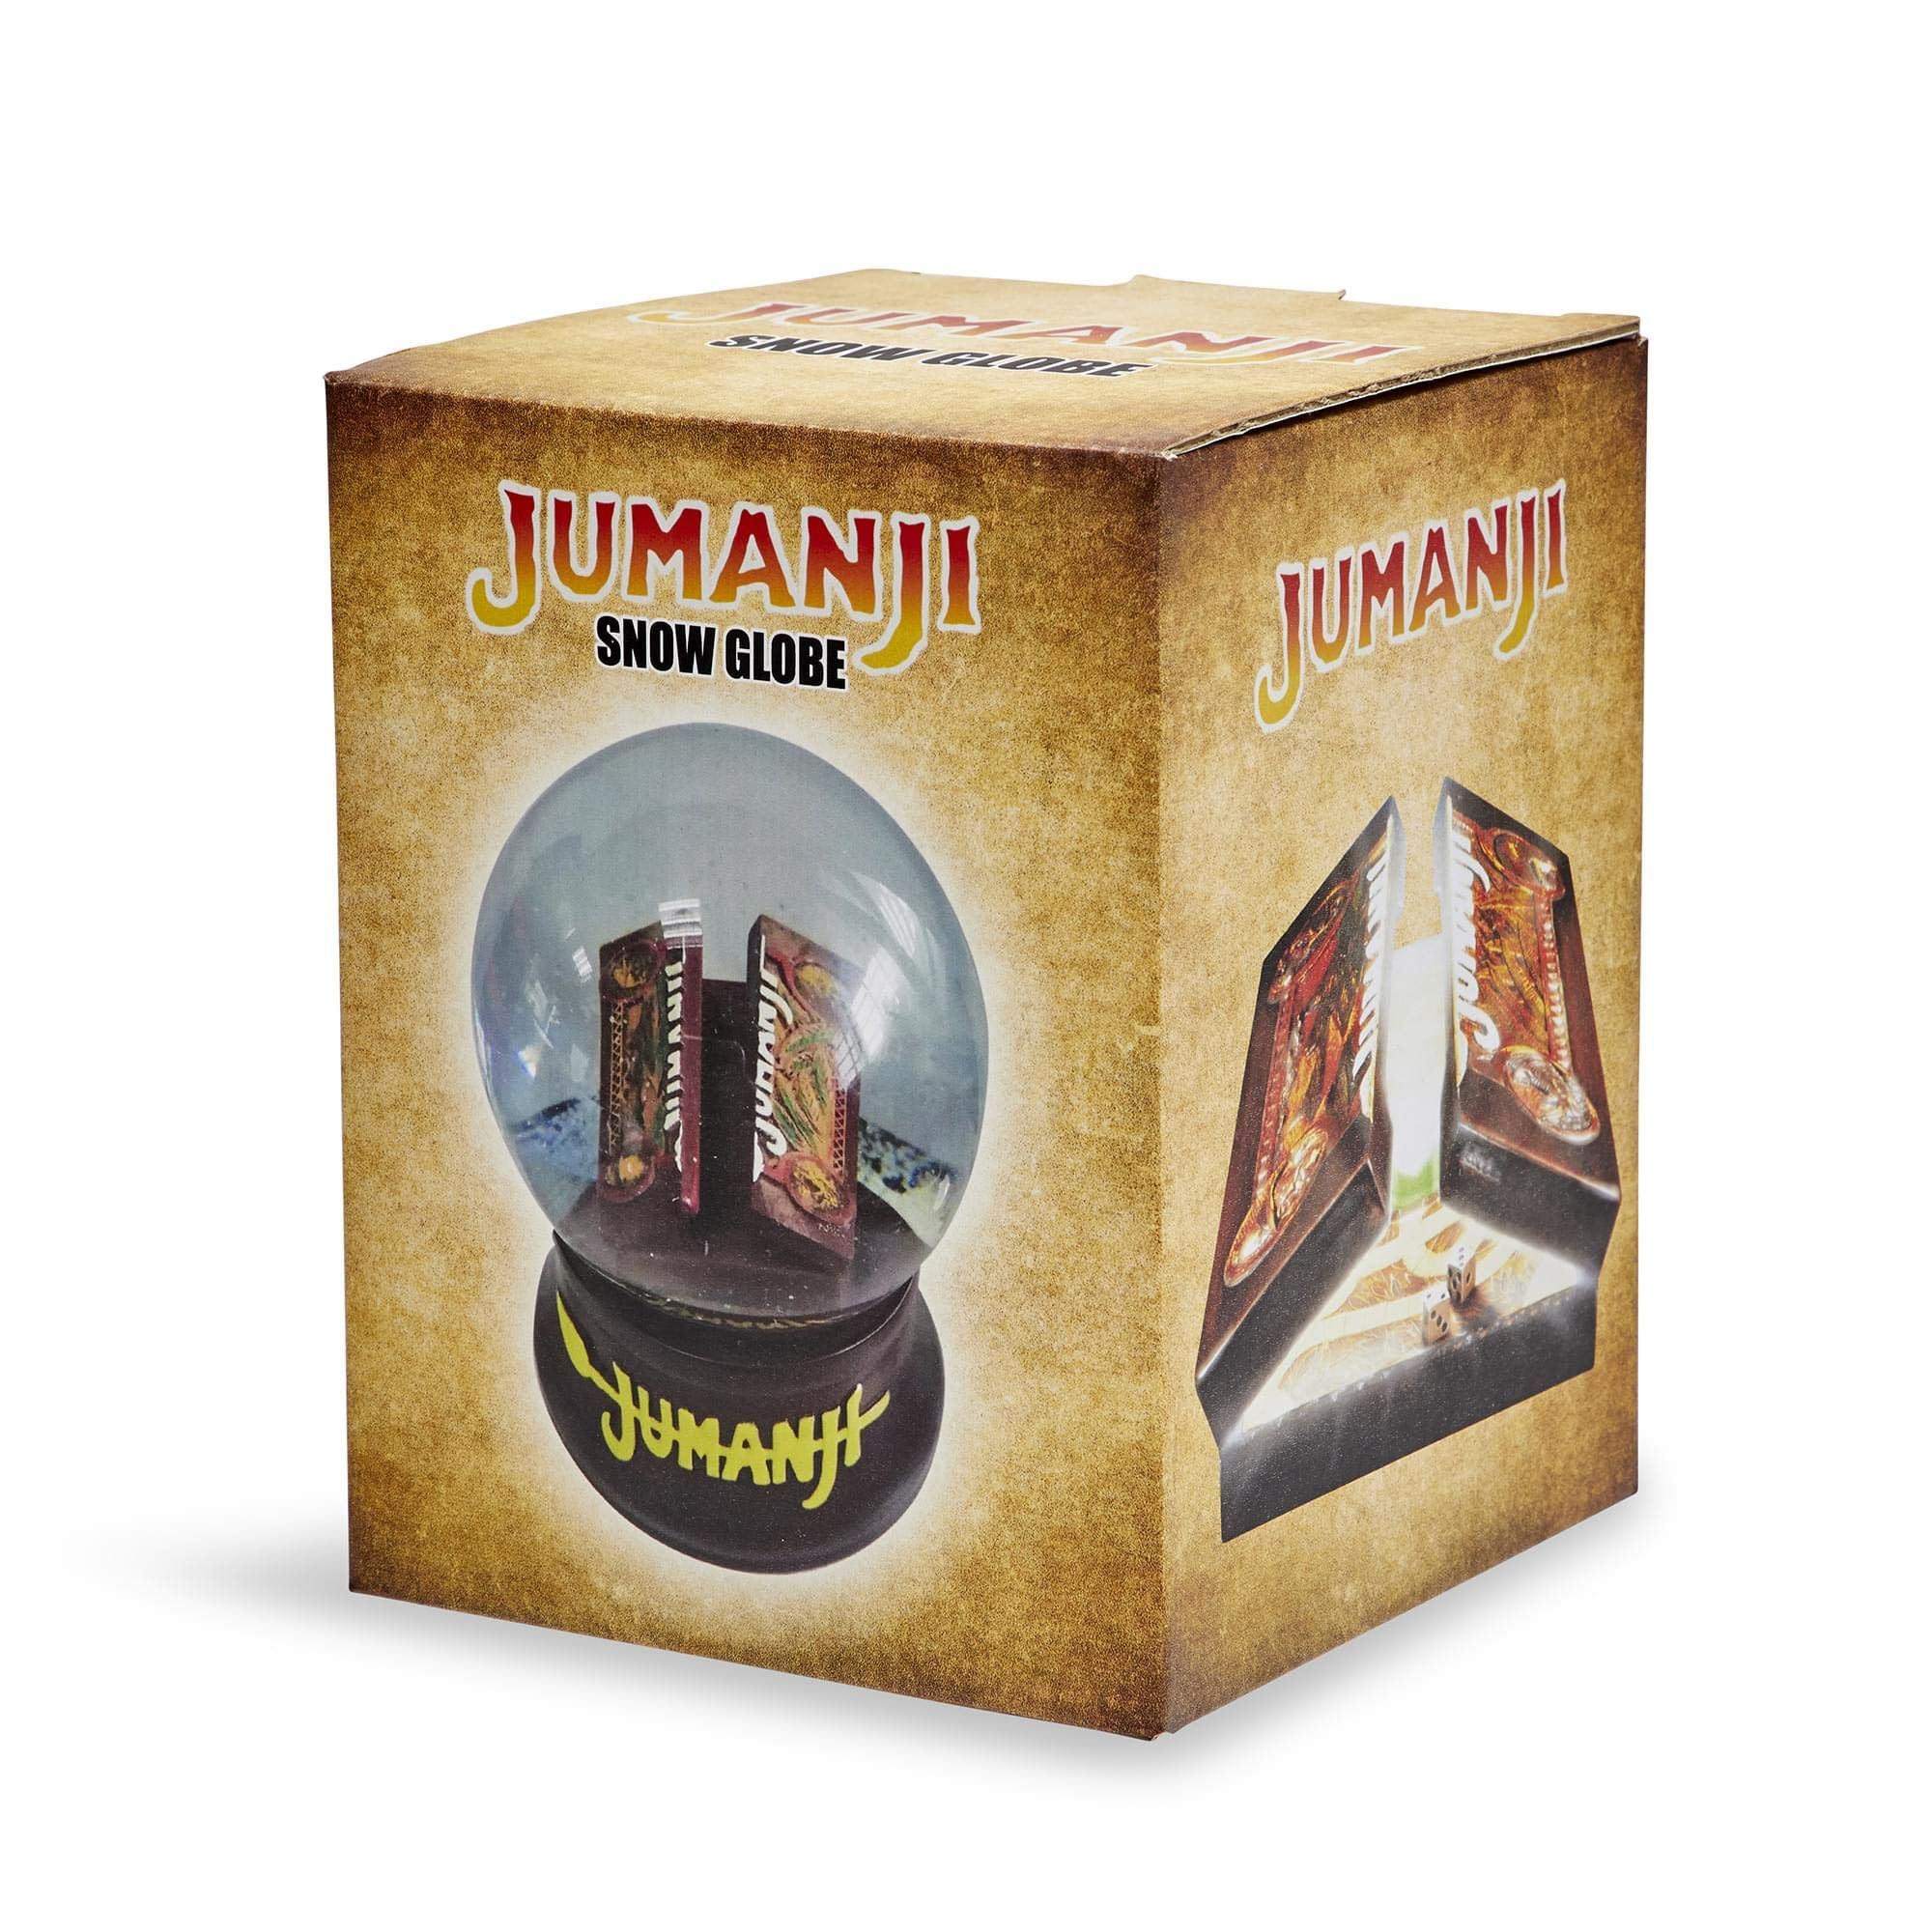 Surreal Entertainment Jumanji Classic Board Game Collectible Snow Globe Gift | Measures 5 x 4 Inches: Amazon.es: Juguetes y juegos